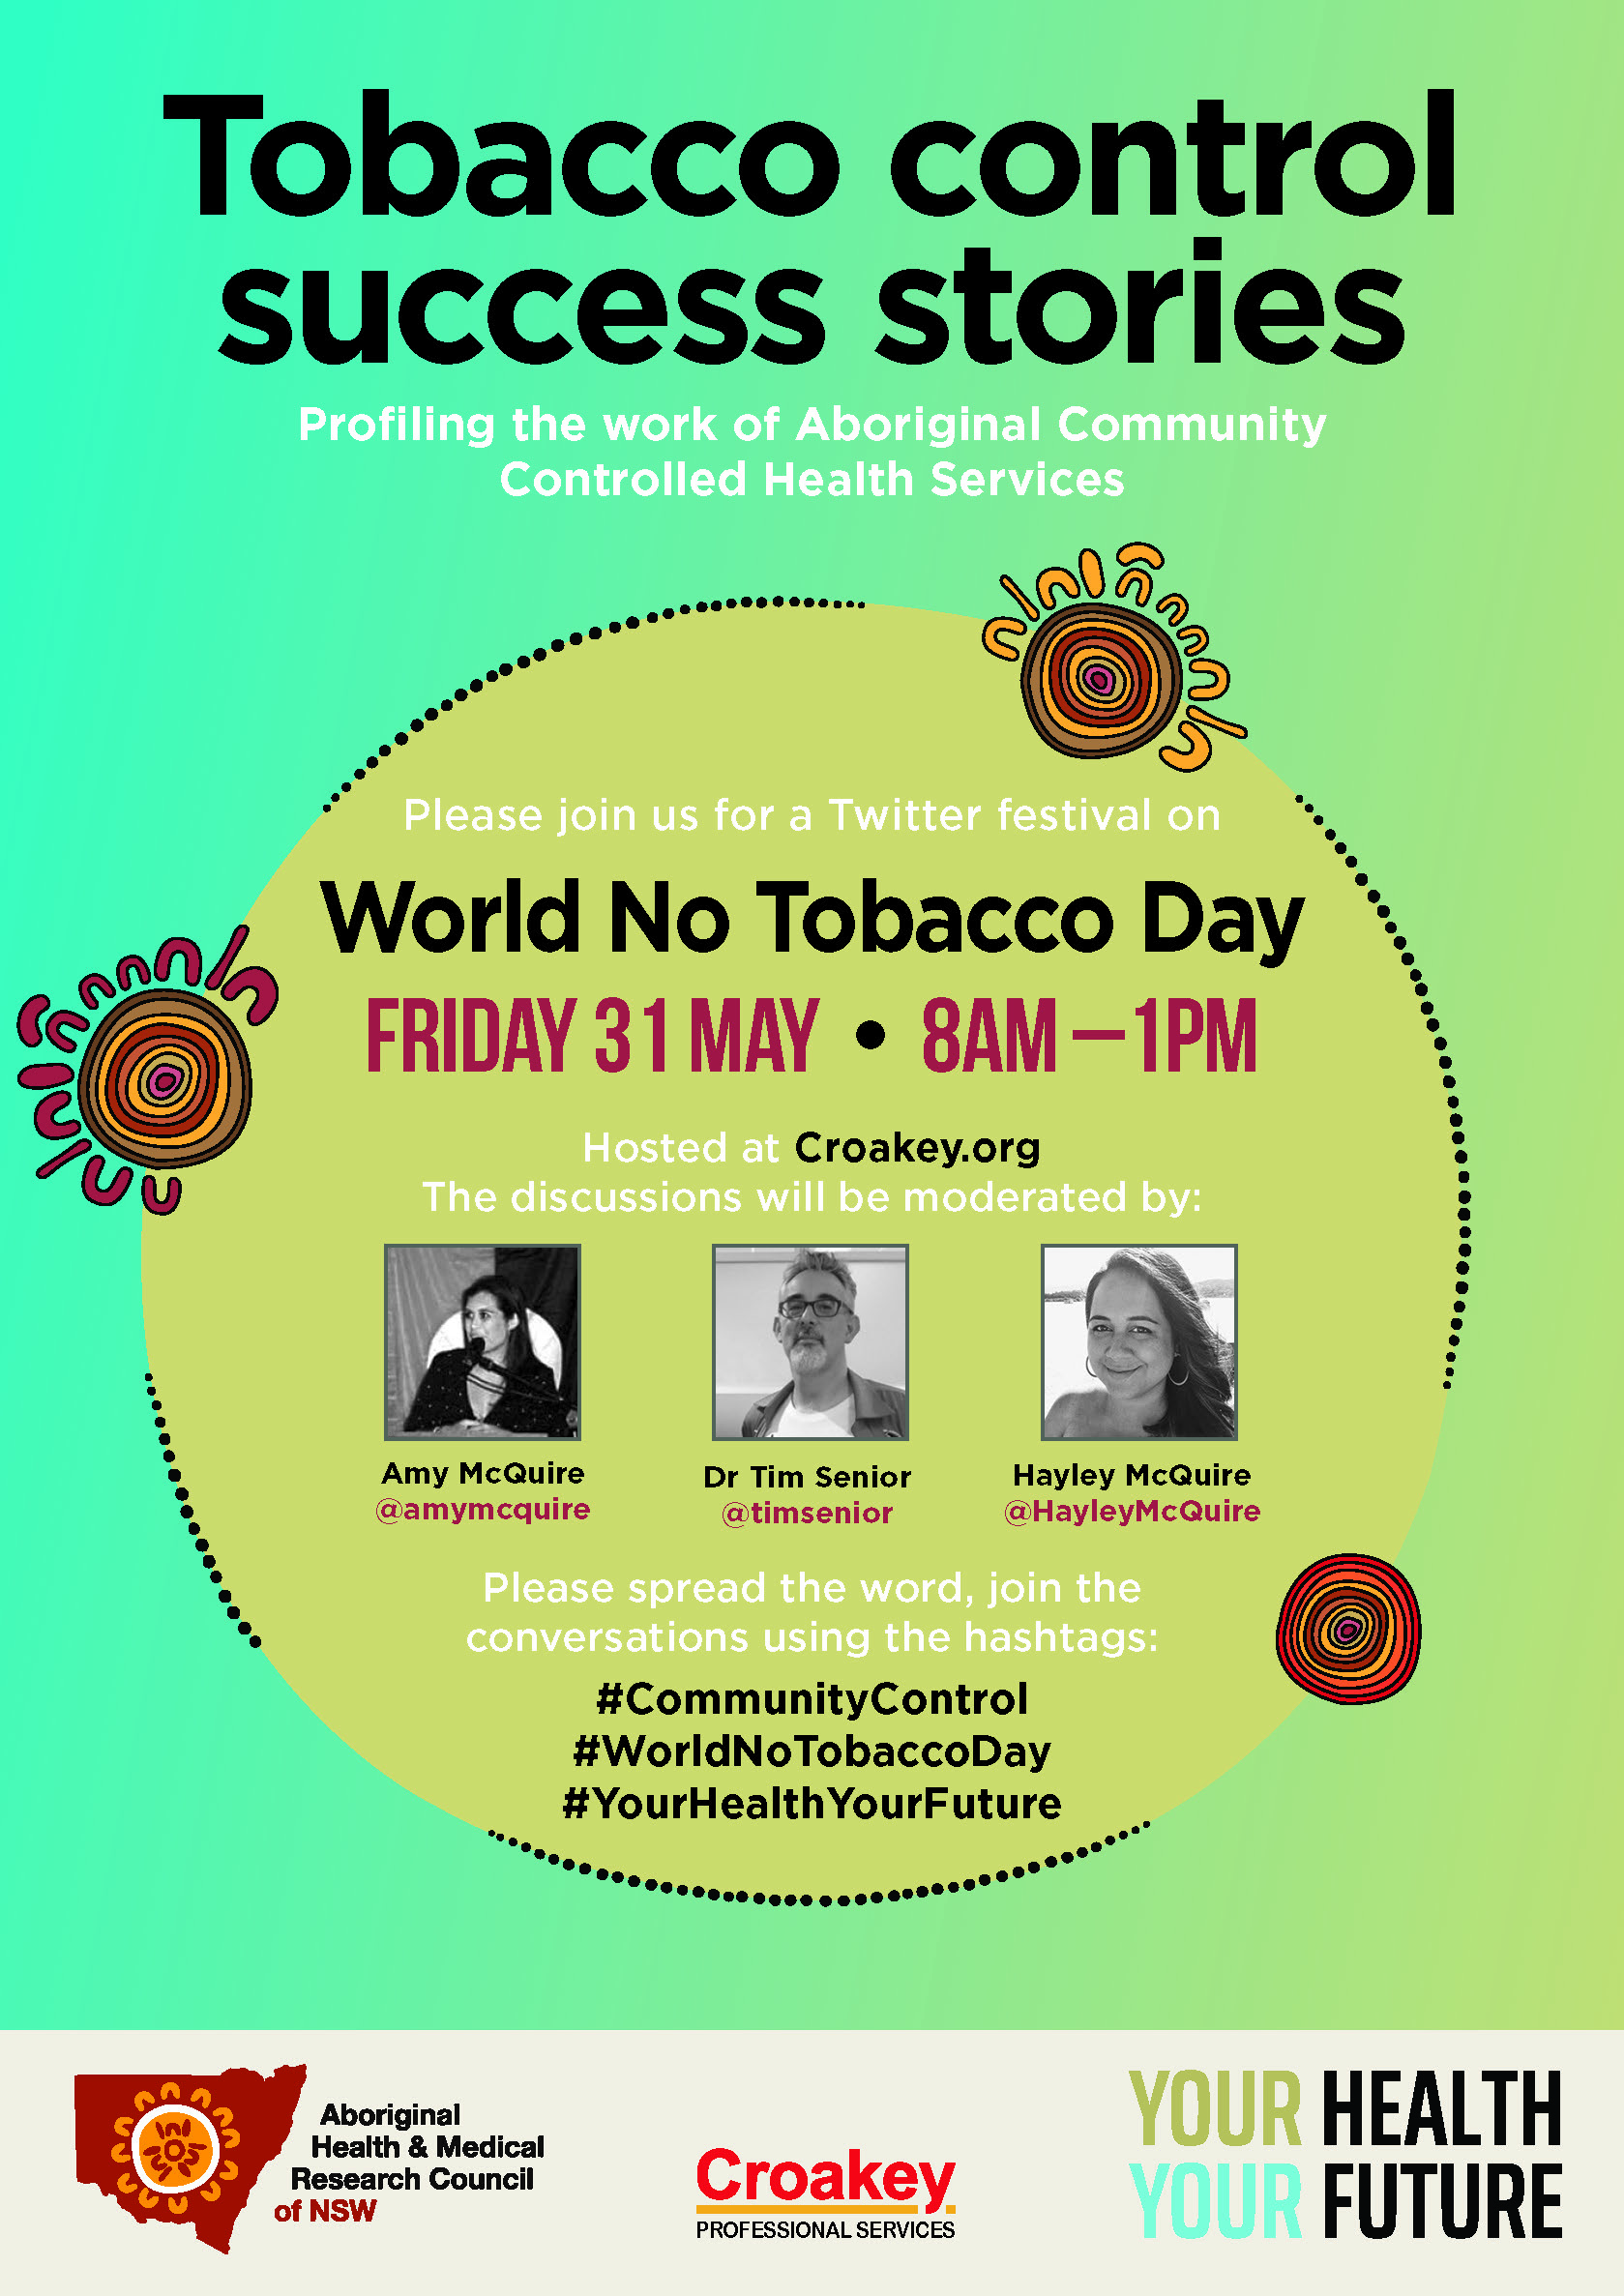 Announcing program for World No Tobacco Day Twitter Festival on 31 May - #CommunityControl